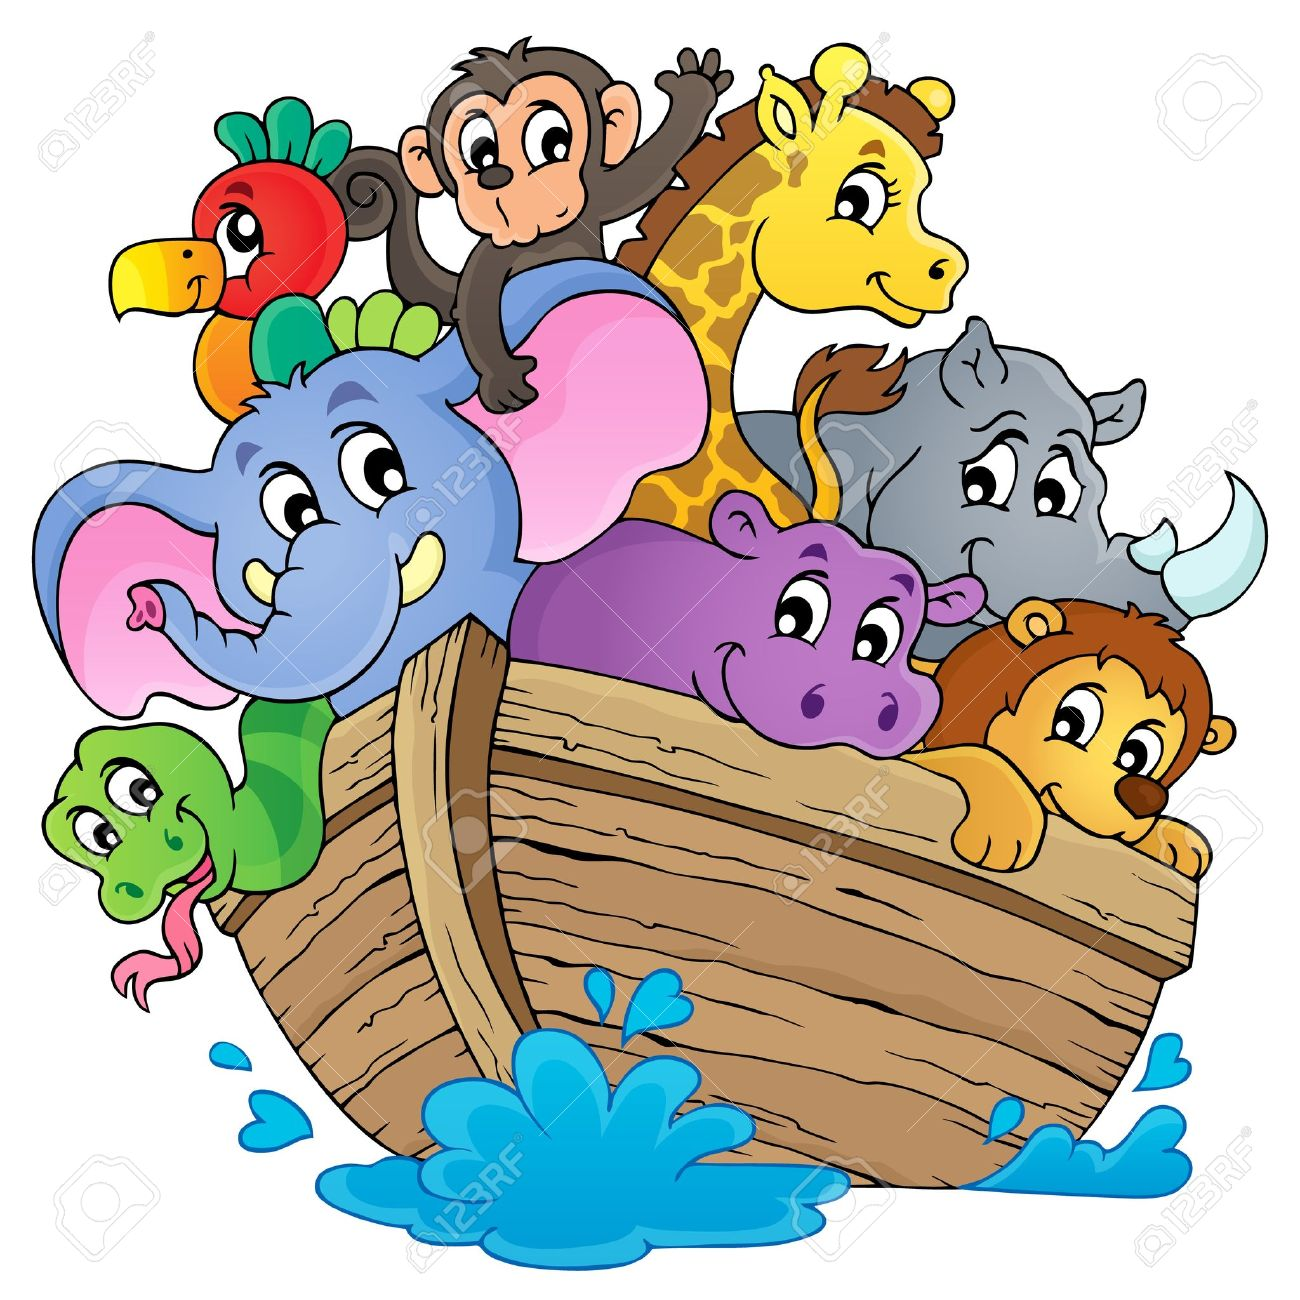 noahs ark theme image royalty free cliparts vectors and stock rh 123rf com noah's ark clip art images noah's ark clipart